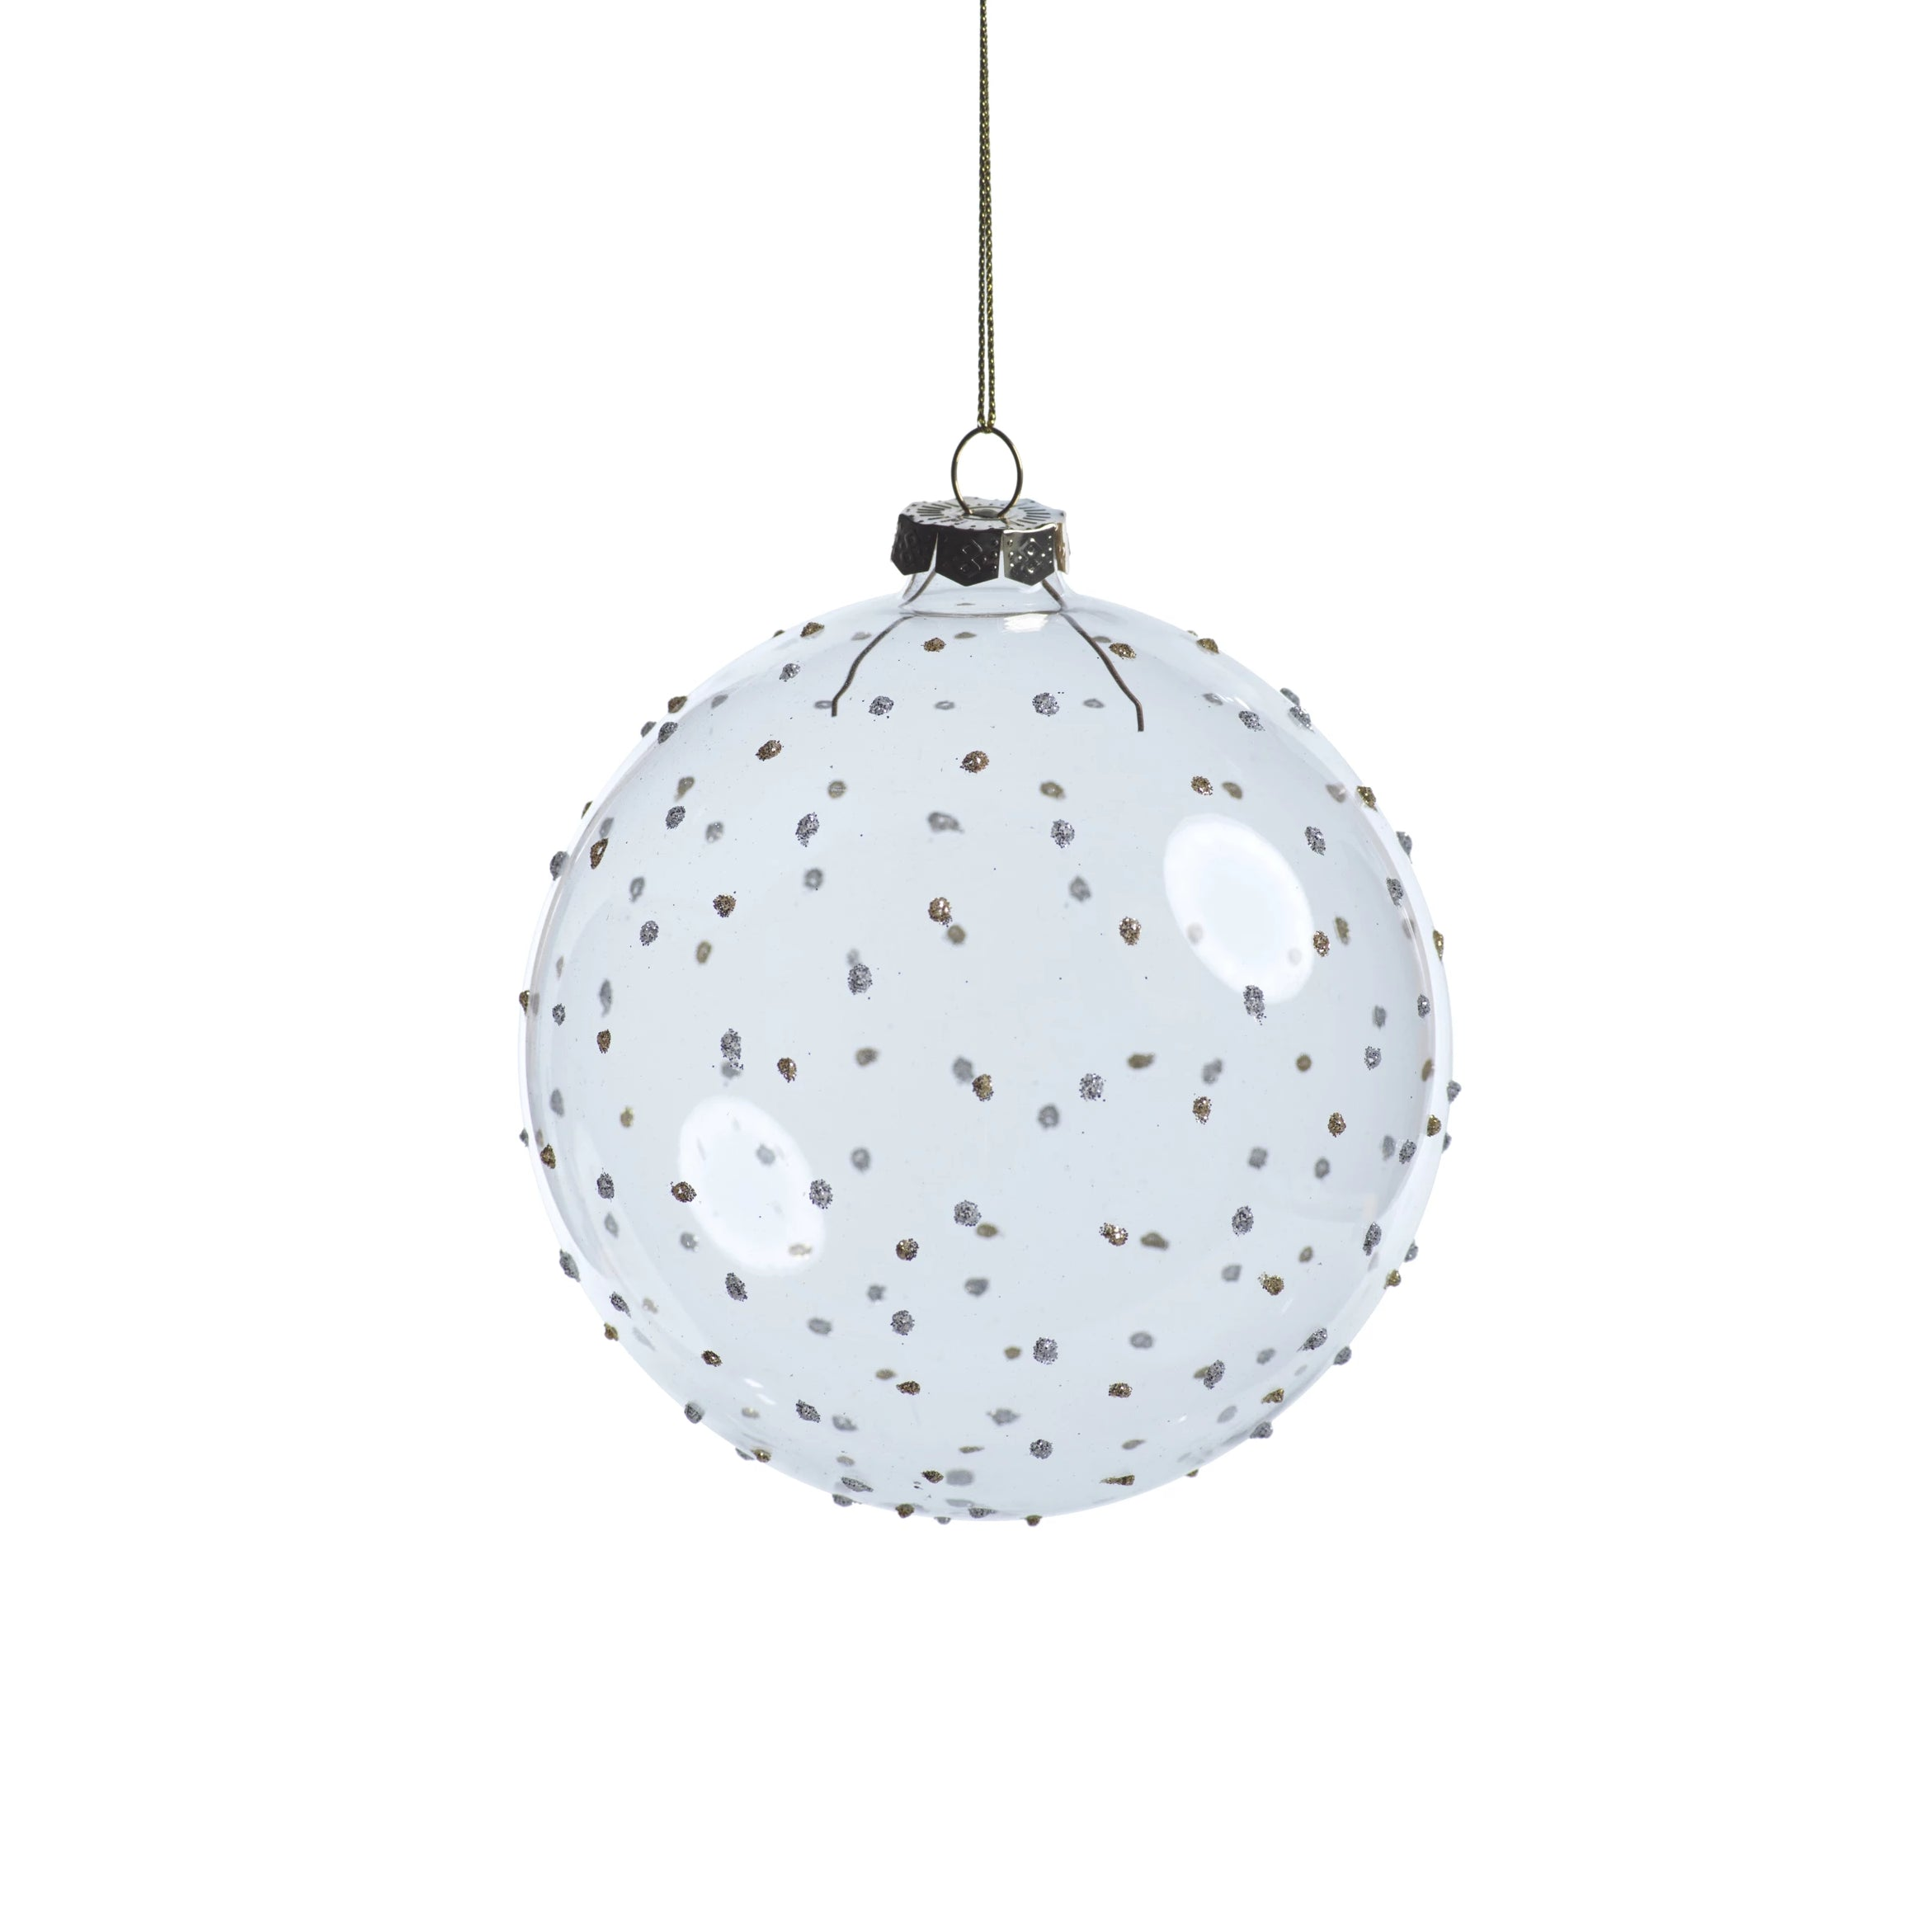 Clear Ball Ornament w/ Silver and Gold Glitter Dots - CARLYLE AVENUE